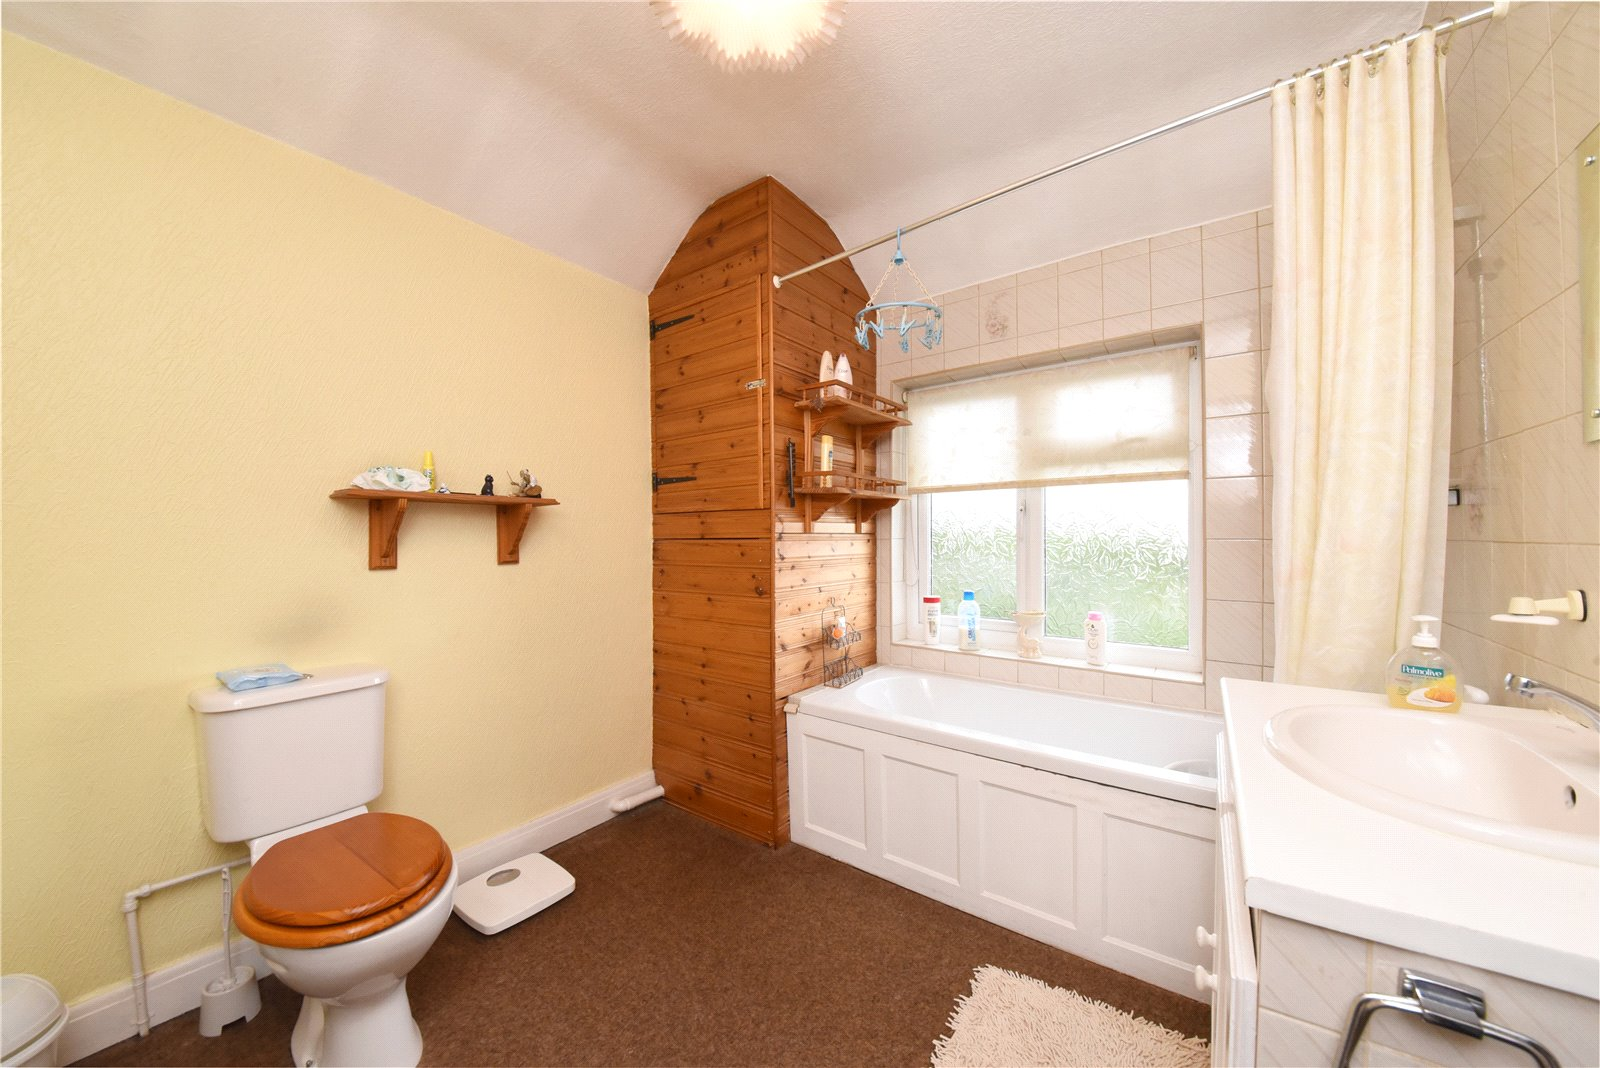 3 bed house for sale in Whetstone, N20 0DG  - Property Image 8